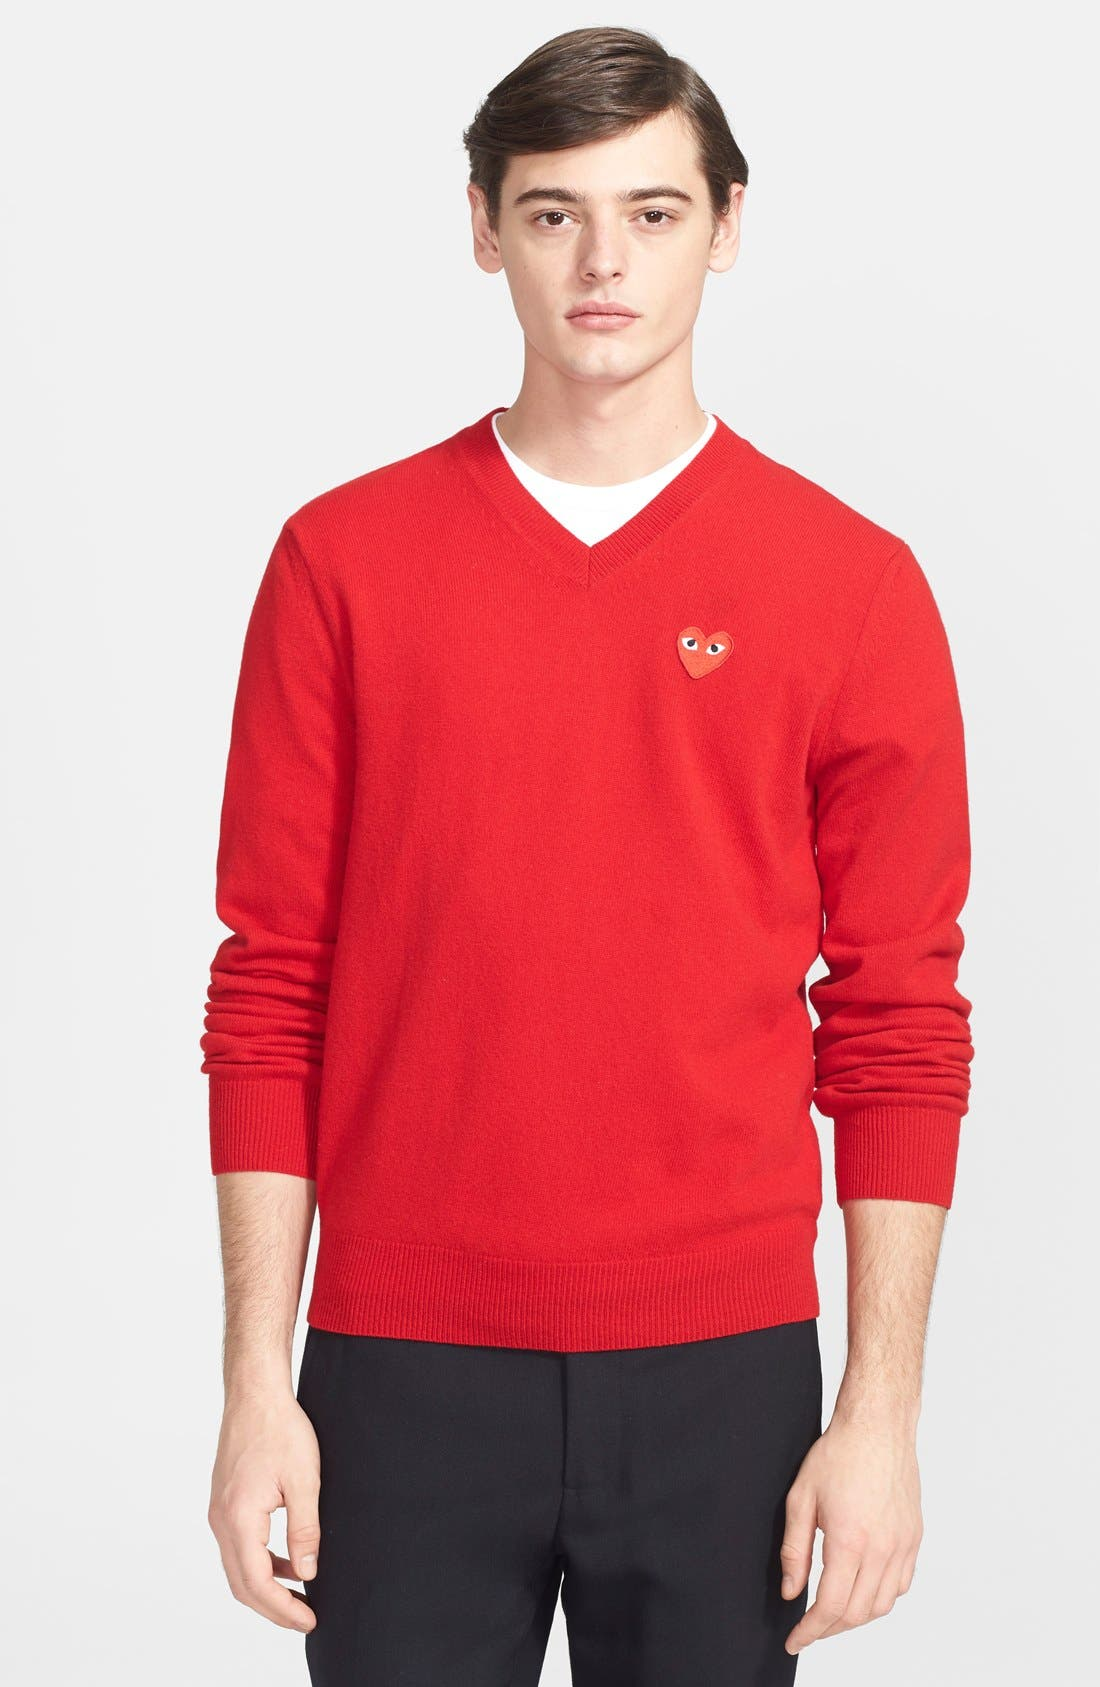 PLAY Wool Pullover,                             Main thumbnail 1, color,                             Red